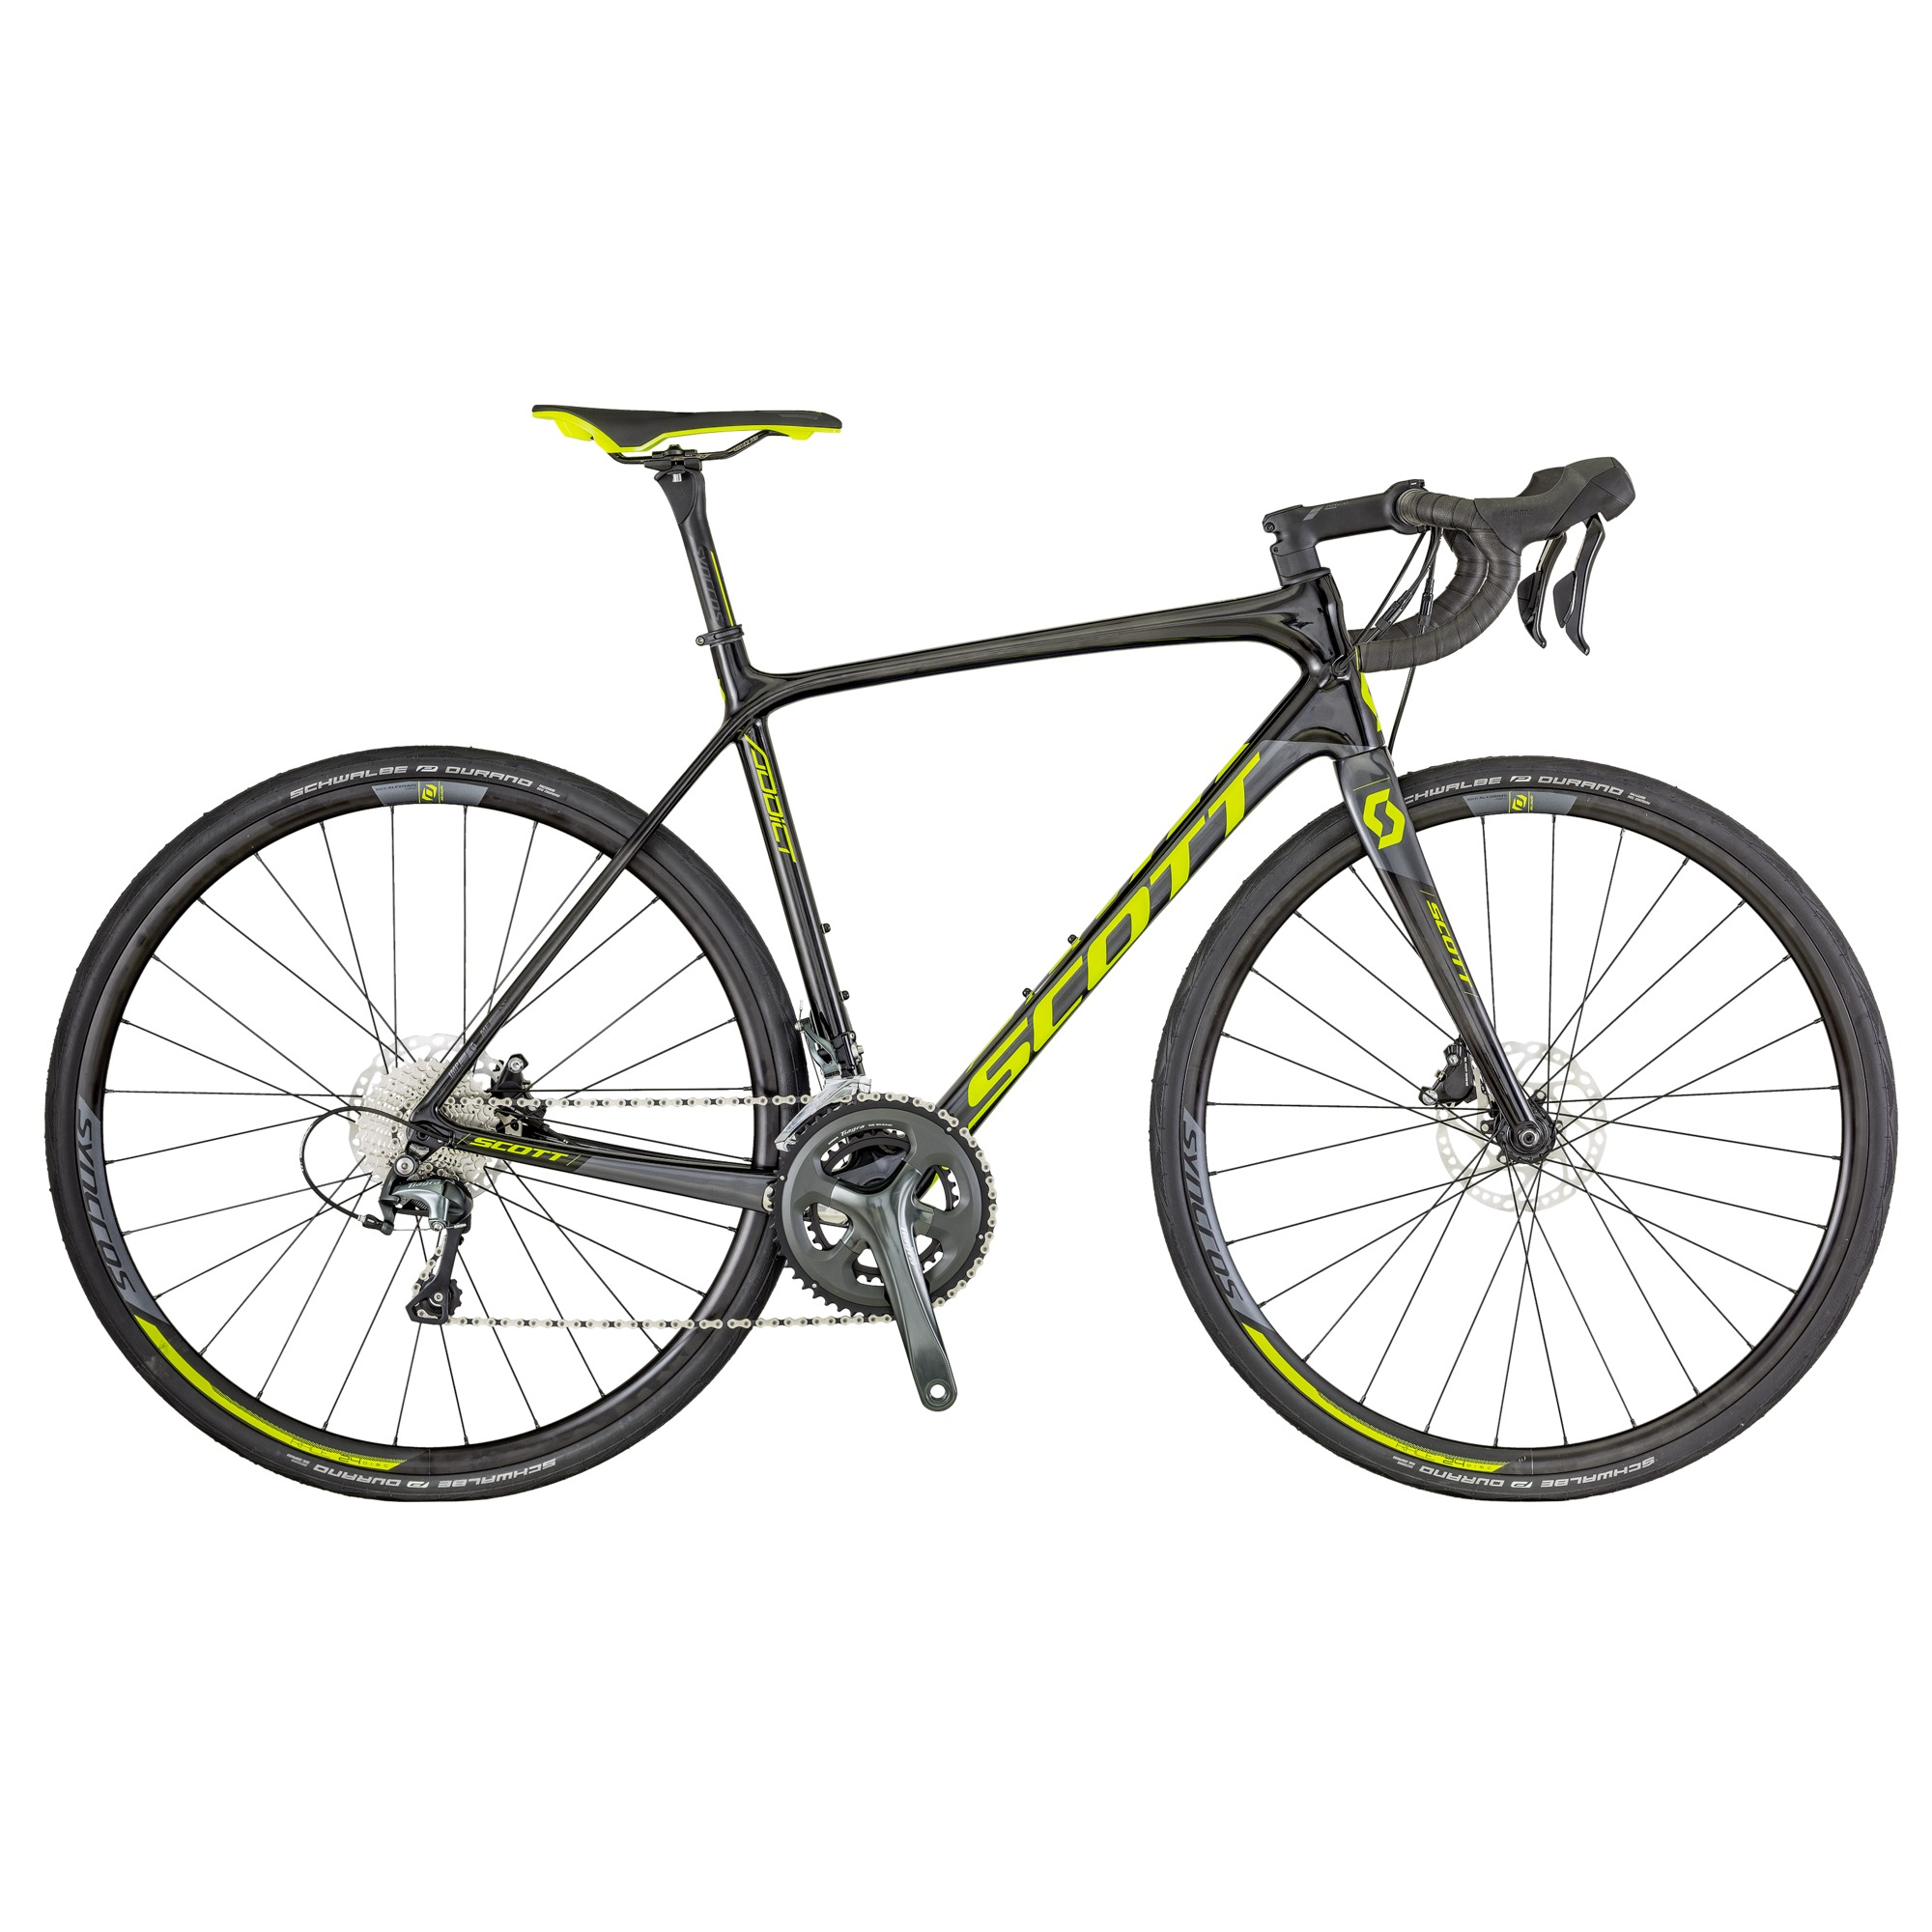 SCOTT Addict 30 Disc Bike XS49 - Zweirad Homann